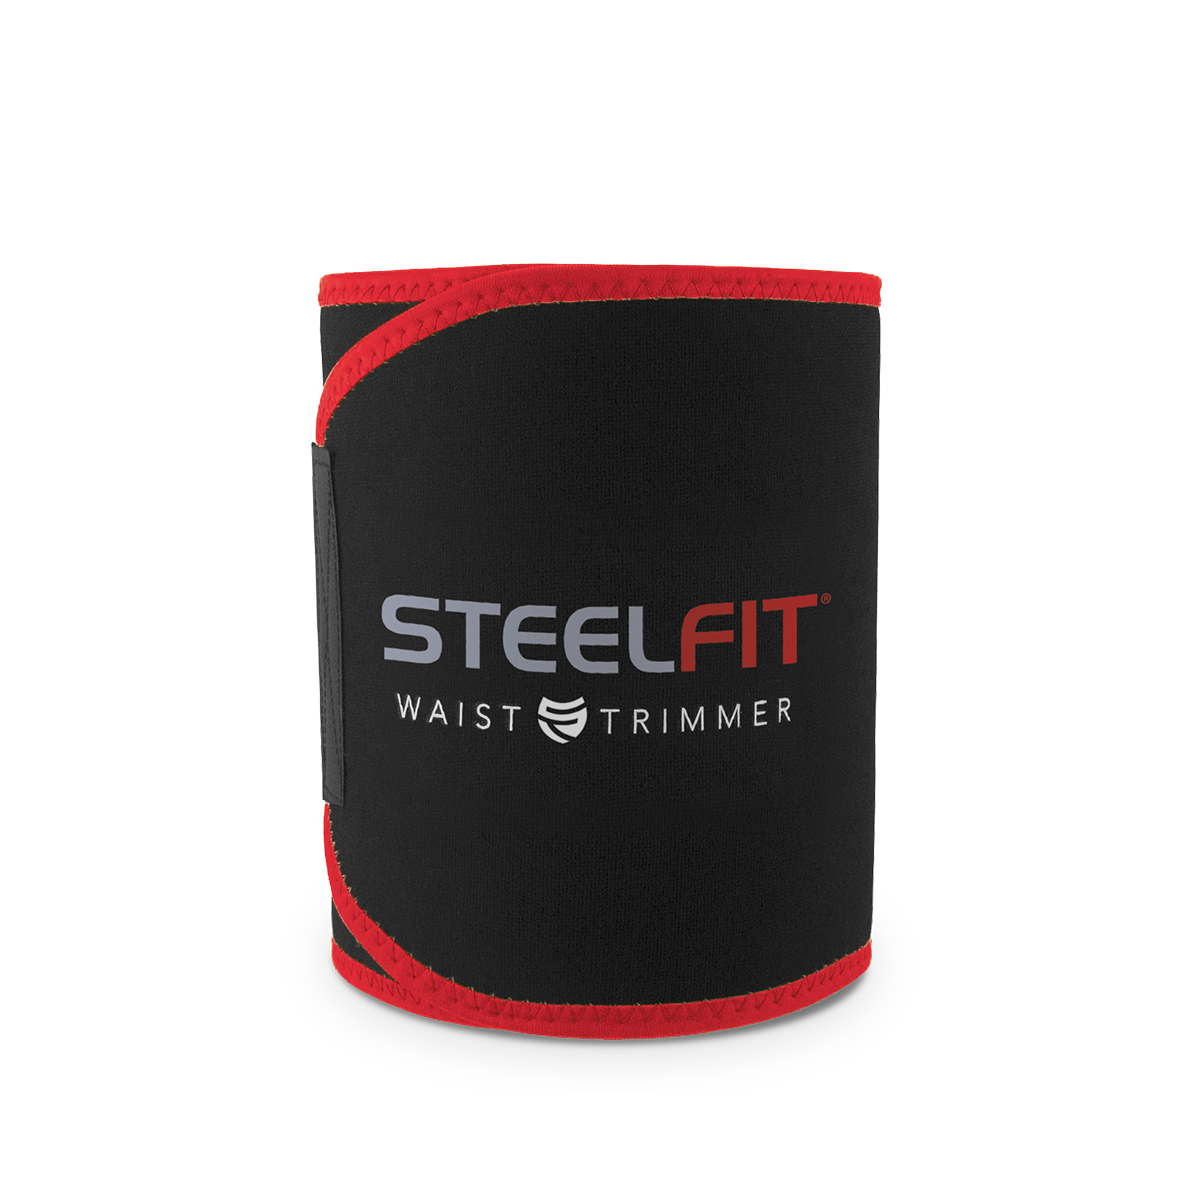 STEELFIT WAIST TRIMMER